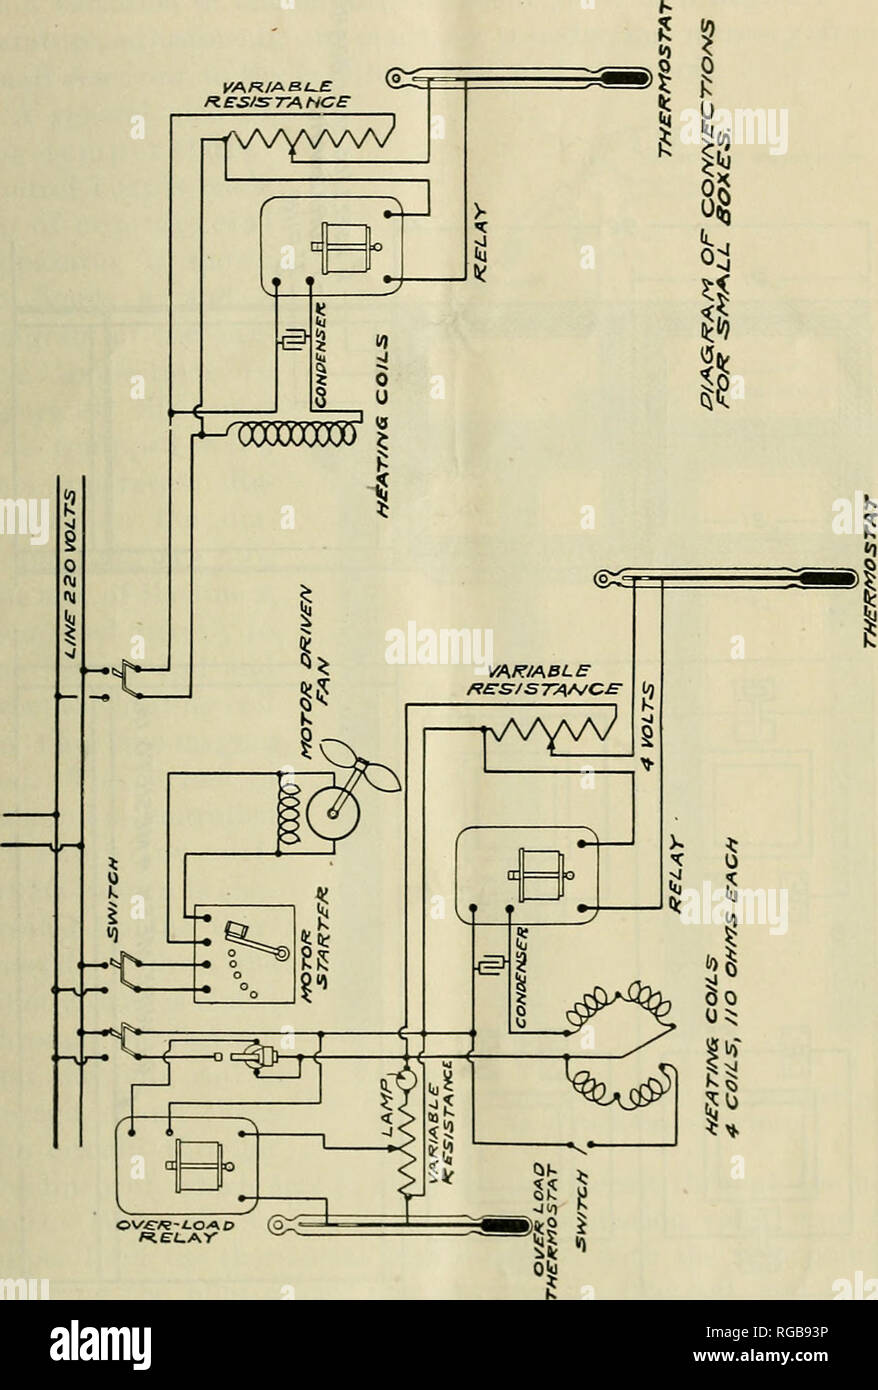 What Is Relay In Electrical Circuit